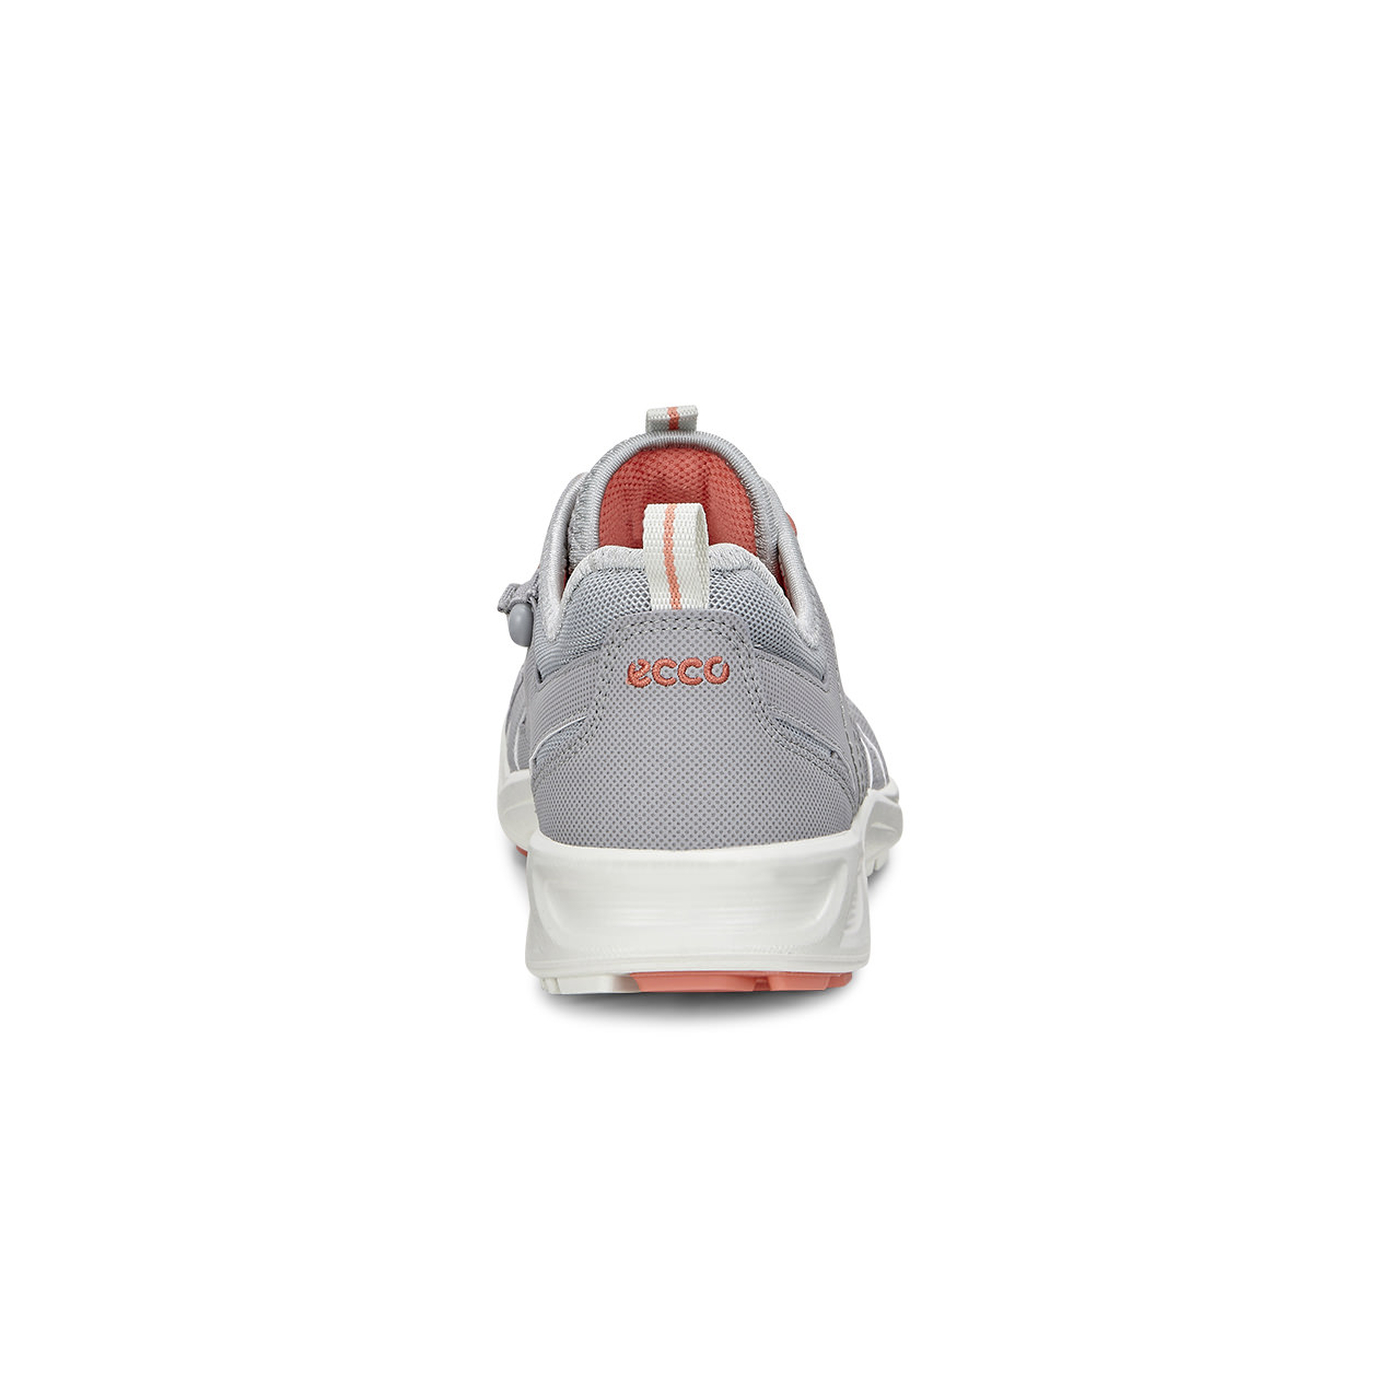 ECCO Womens Terracruise